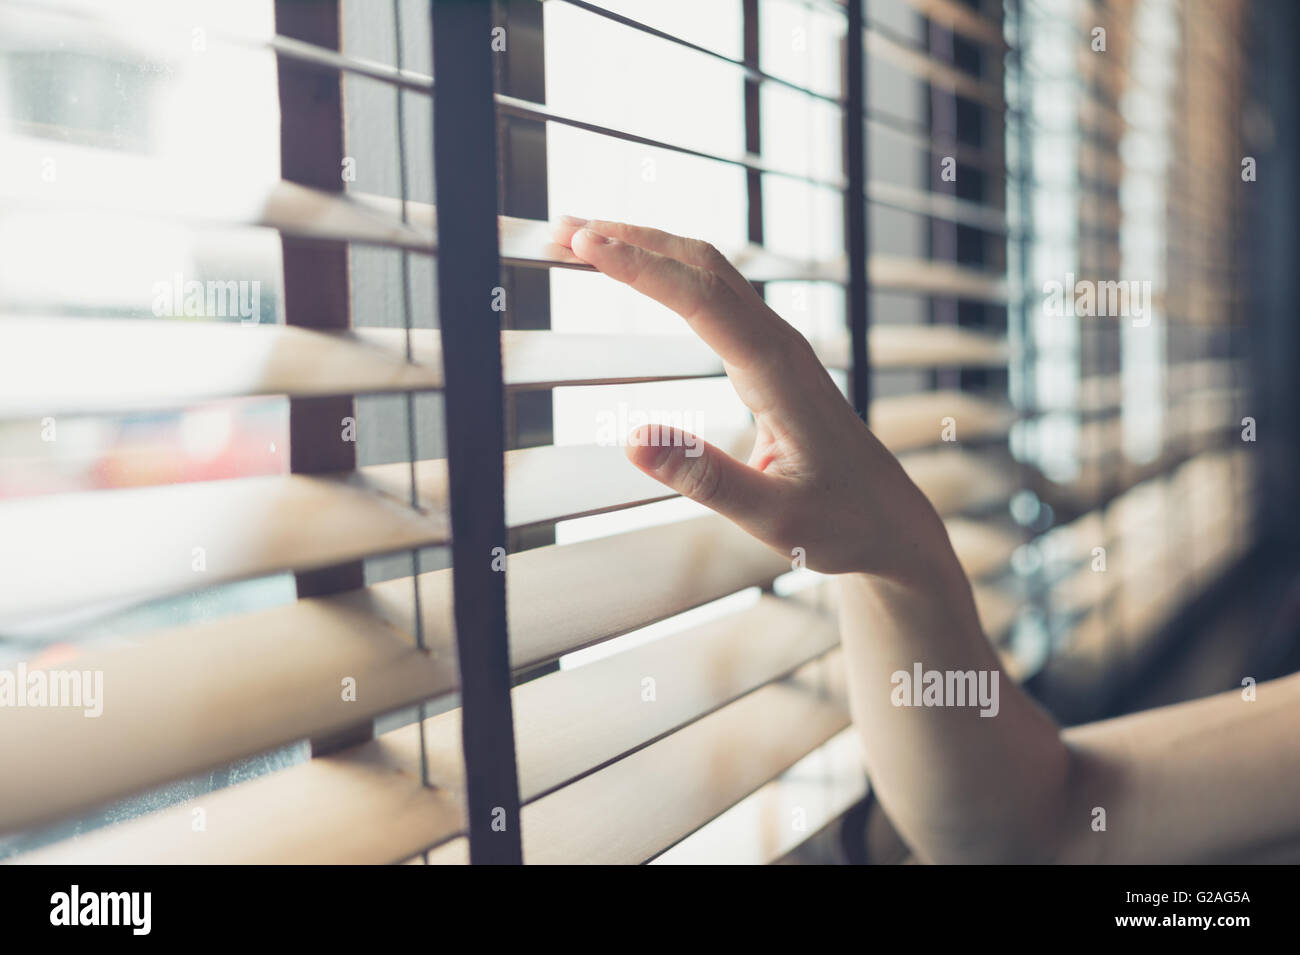 A young female hand is touching some venetian blinds by the window - Stock Image